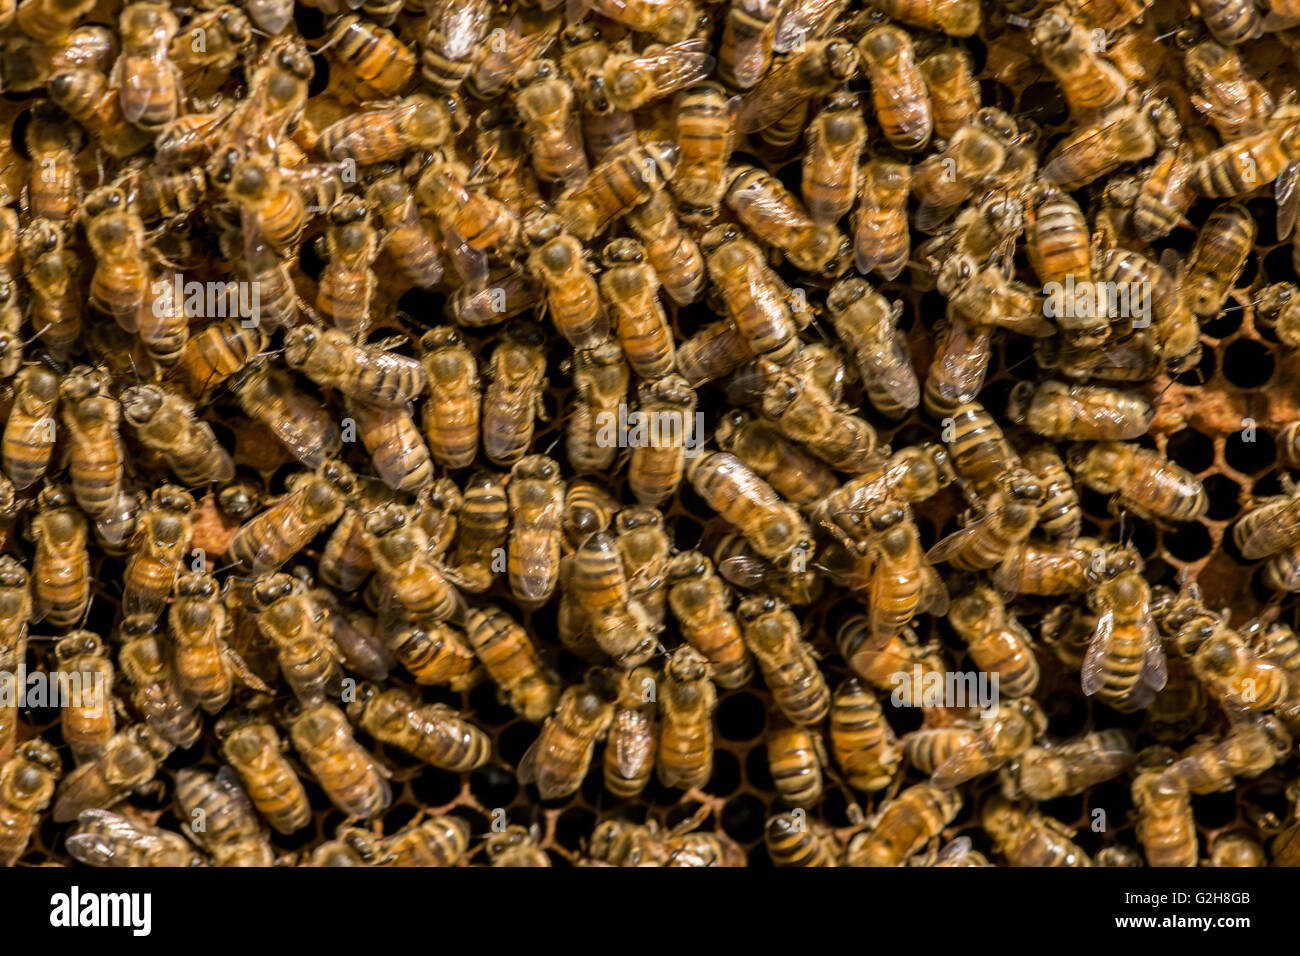 Frame full of worker bees storing honey and tending the nursery, in western Washington, USA - Stock Image